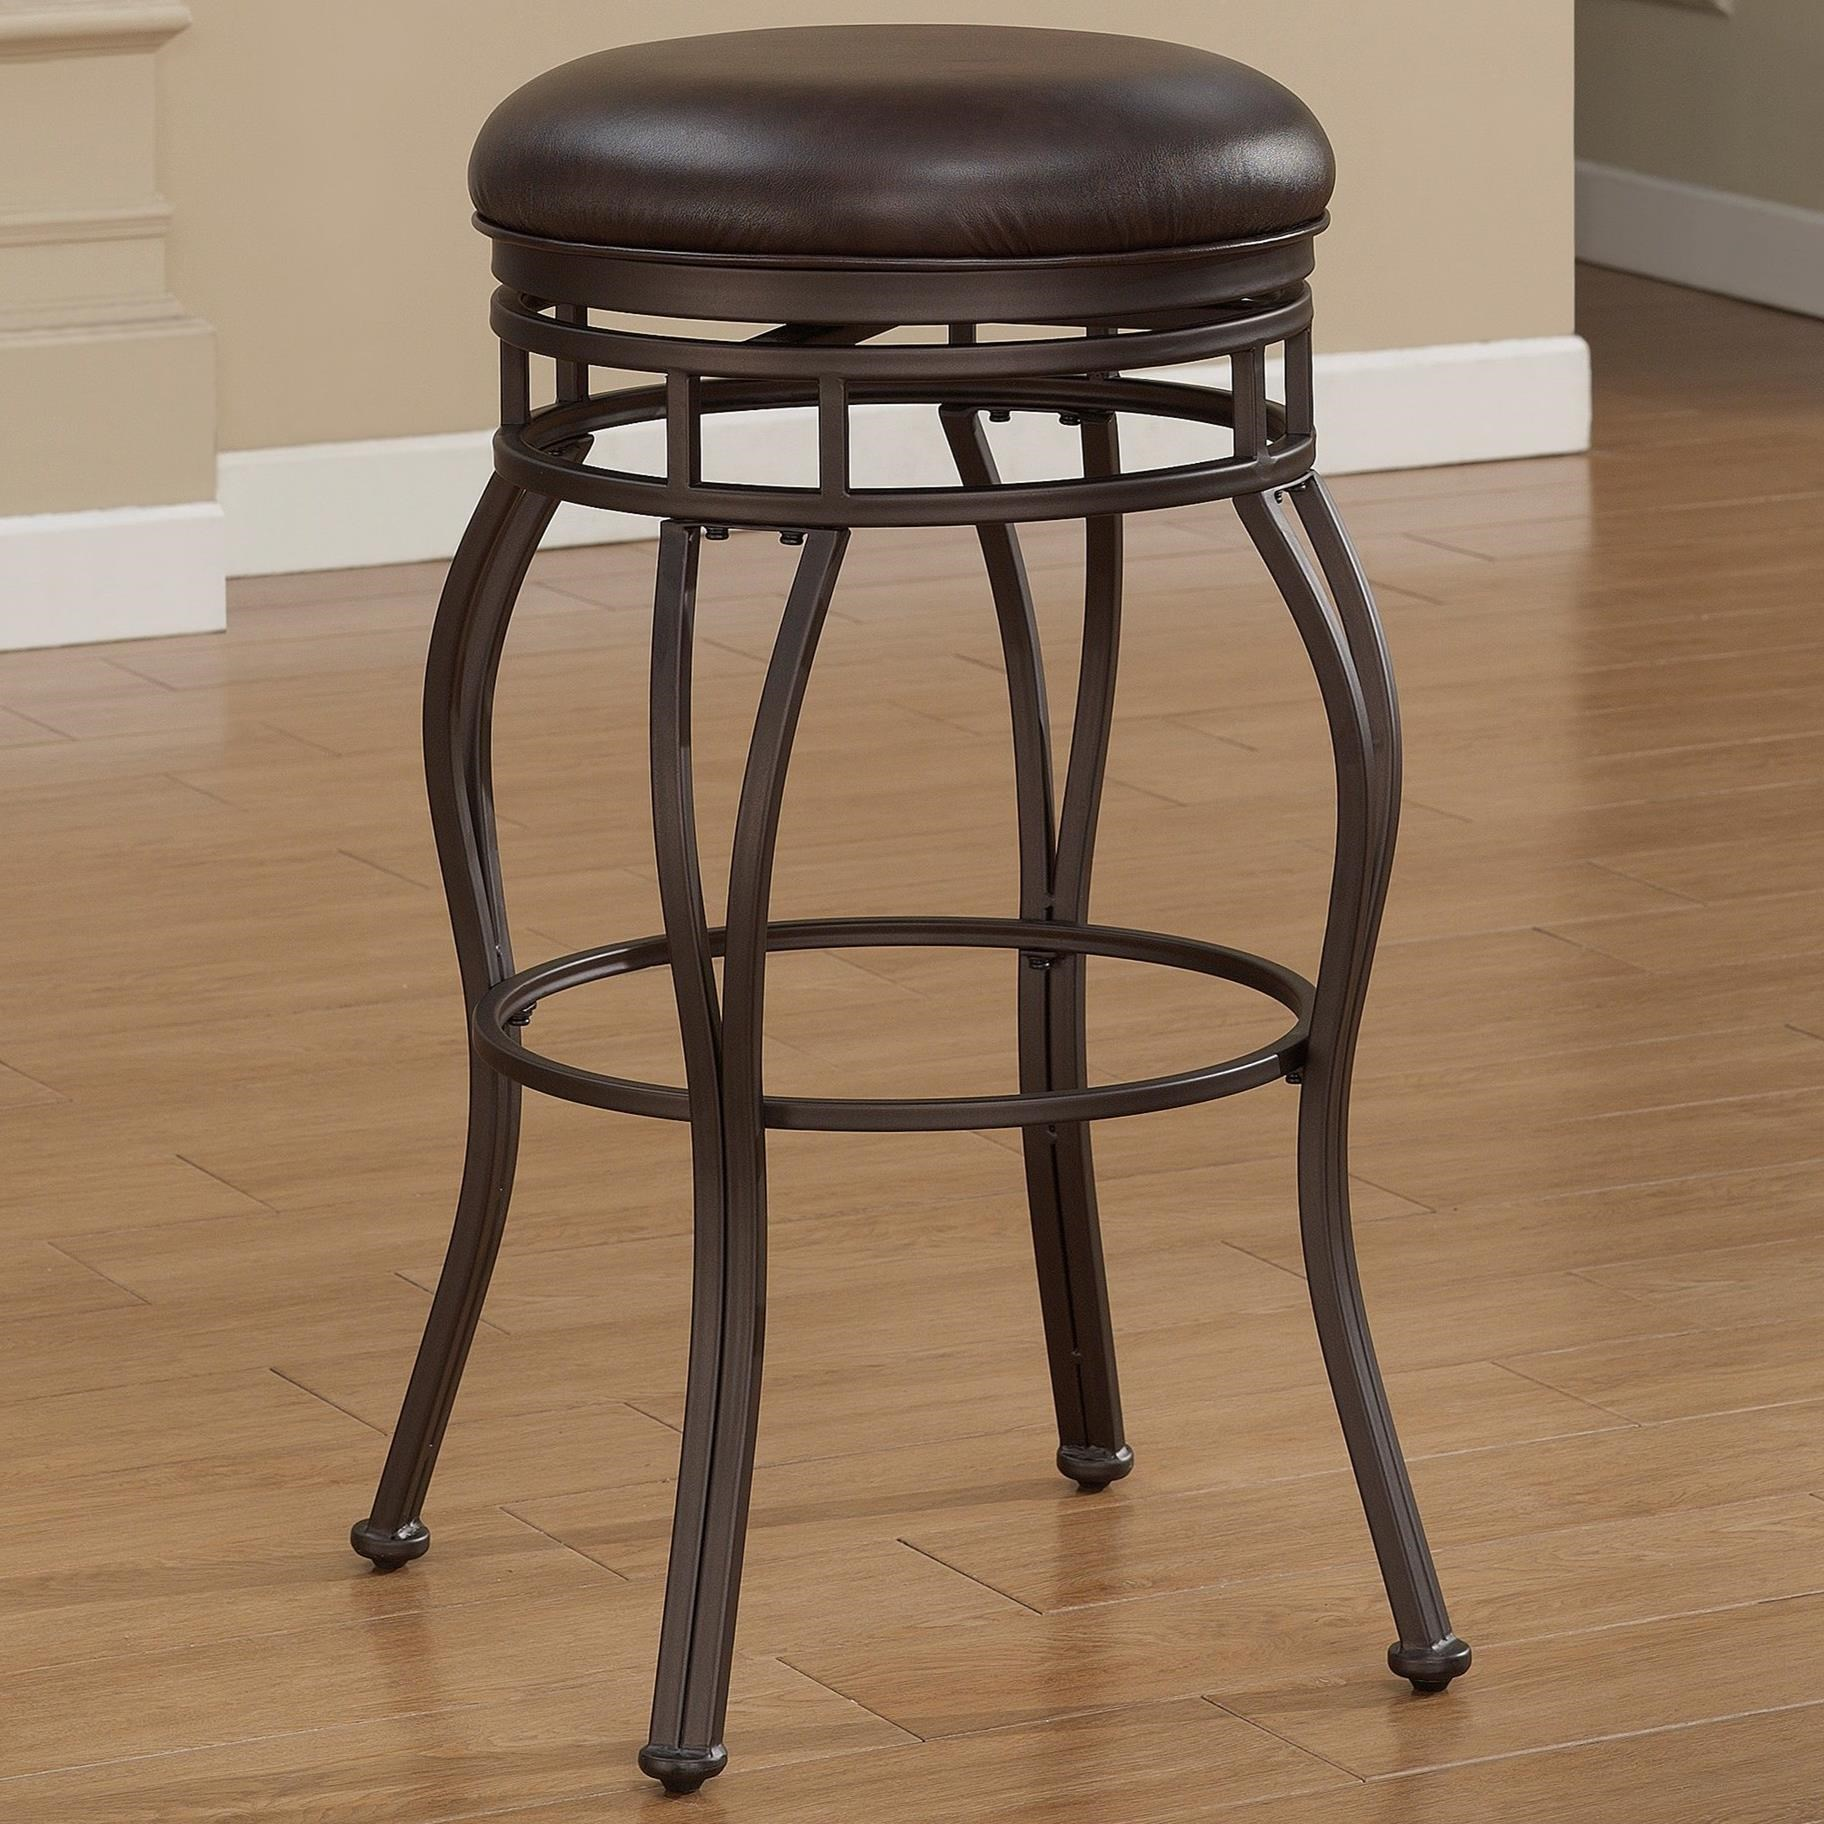 American Woodcrafters Barstools Backless Metal Stool - Item Number: B1-102-26L